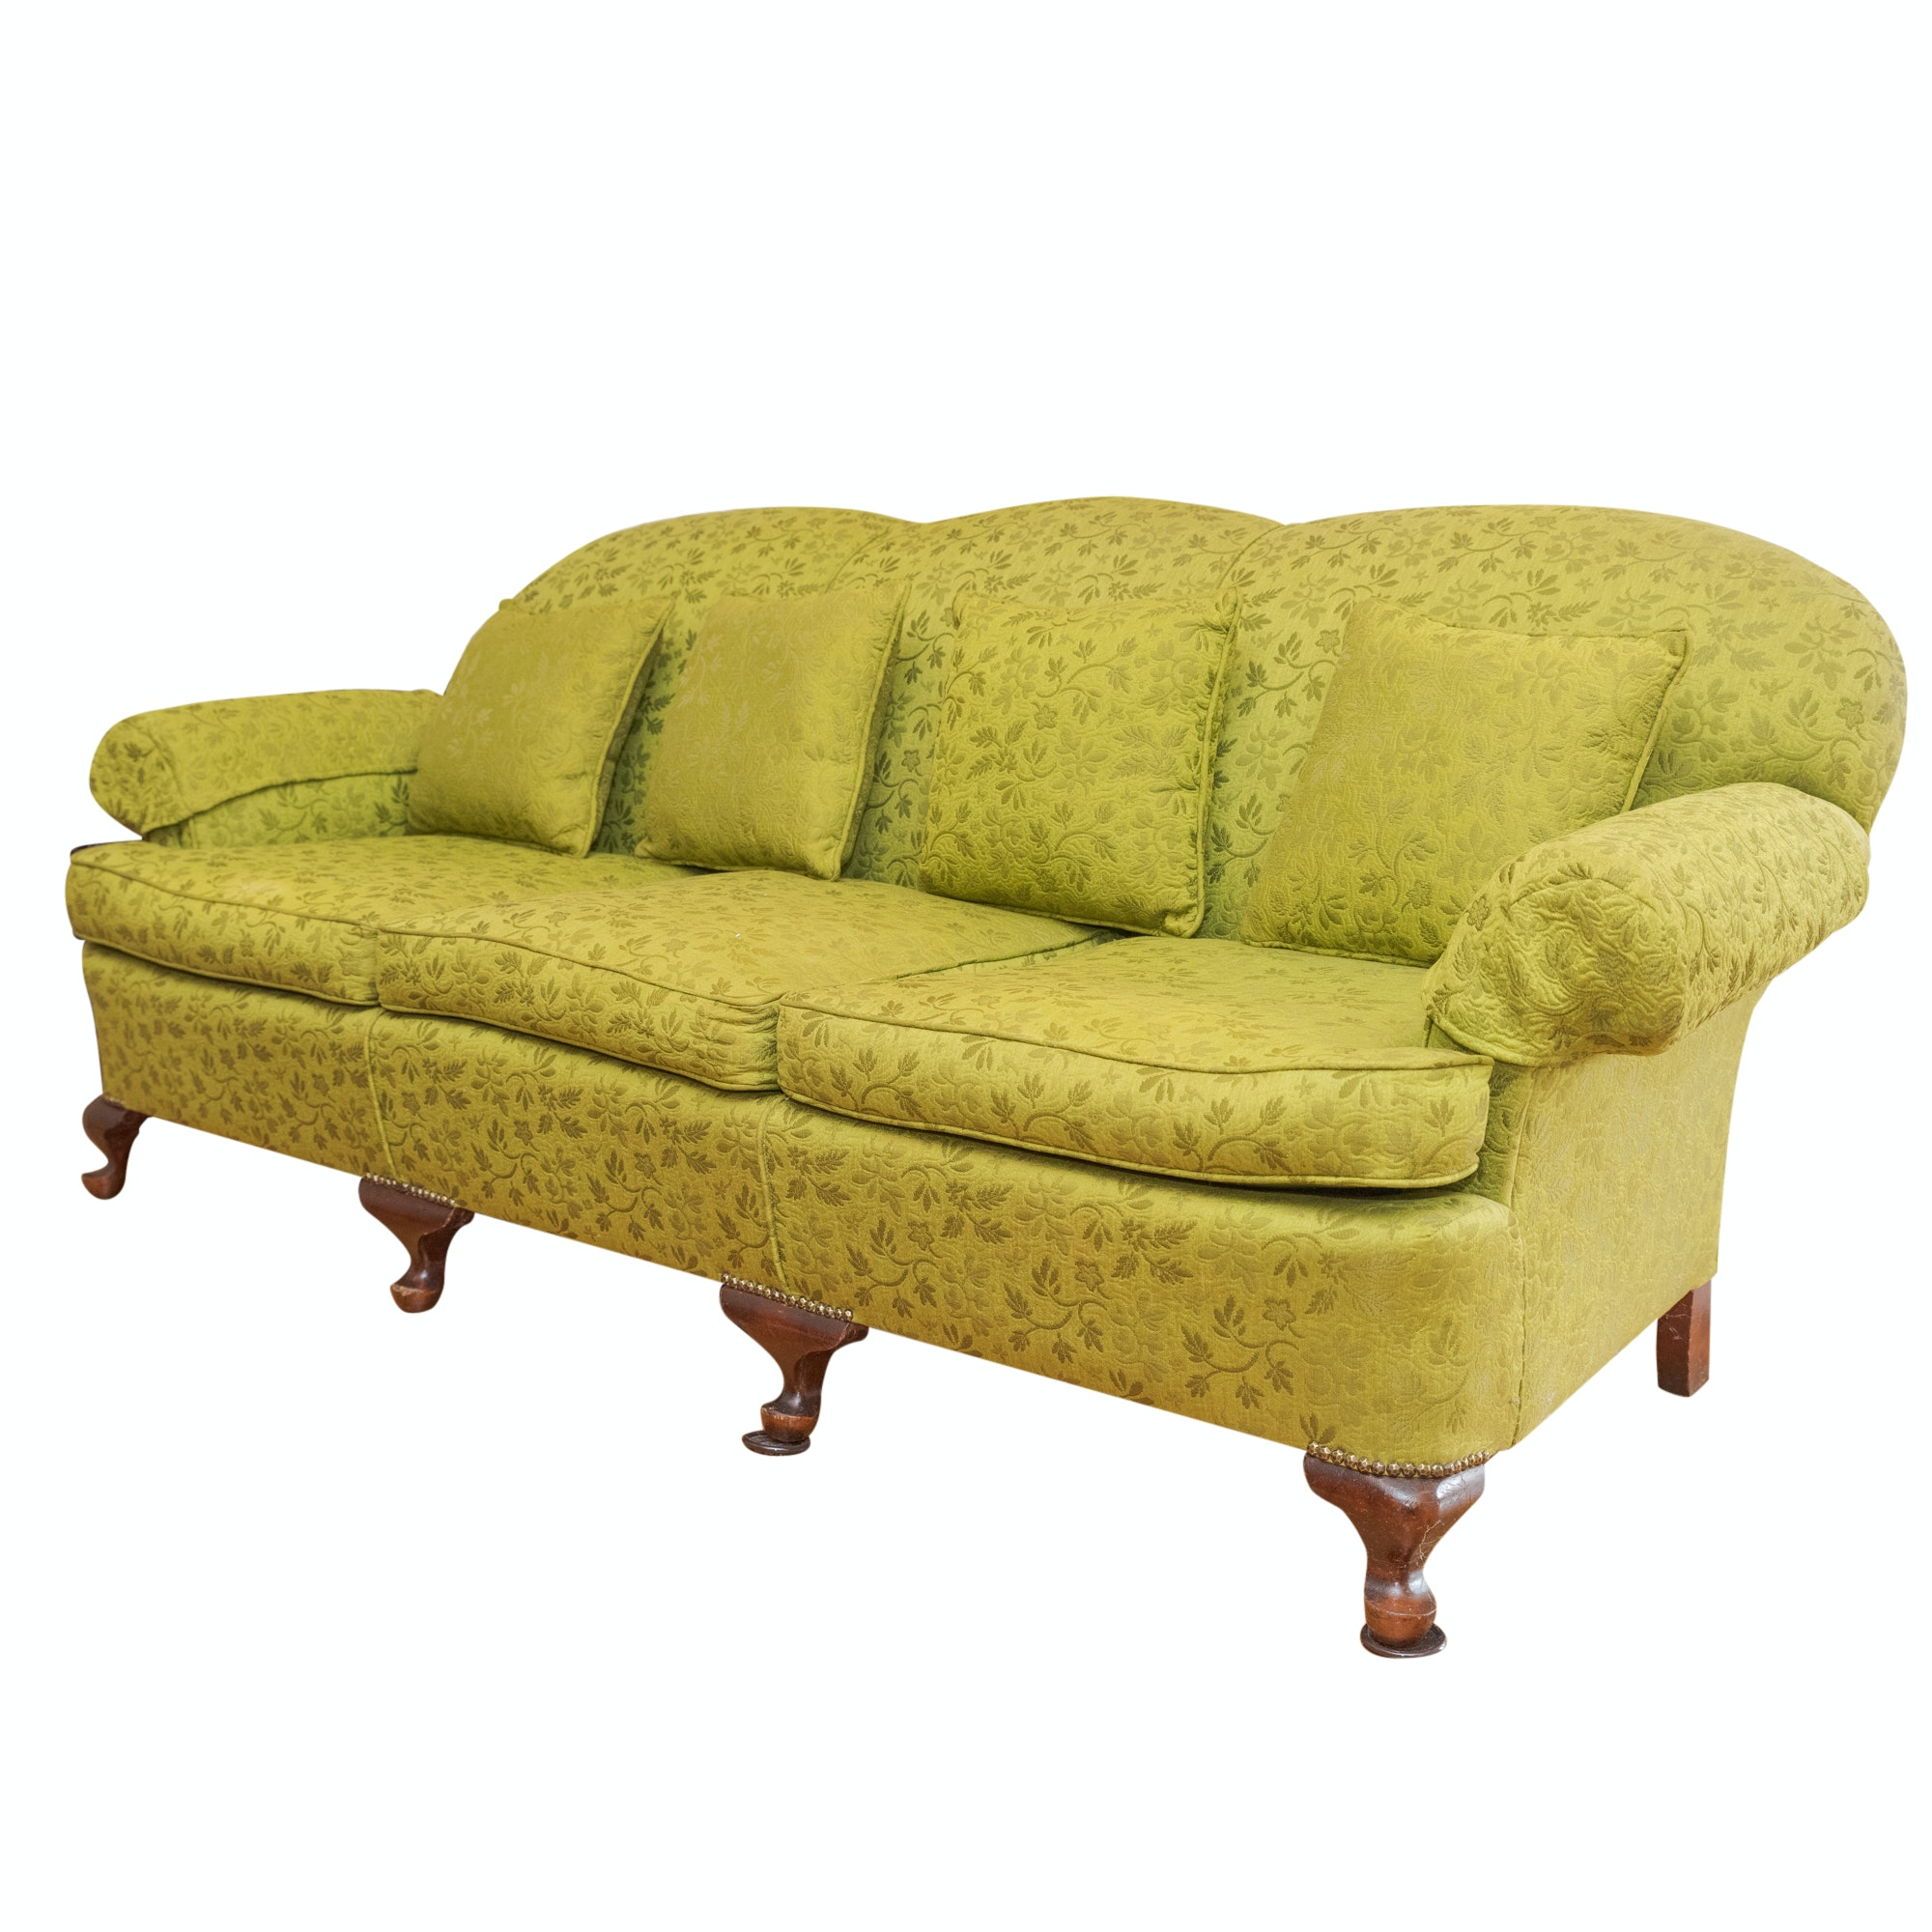 Upholstered Sofa, Late 20th Century